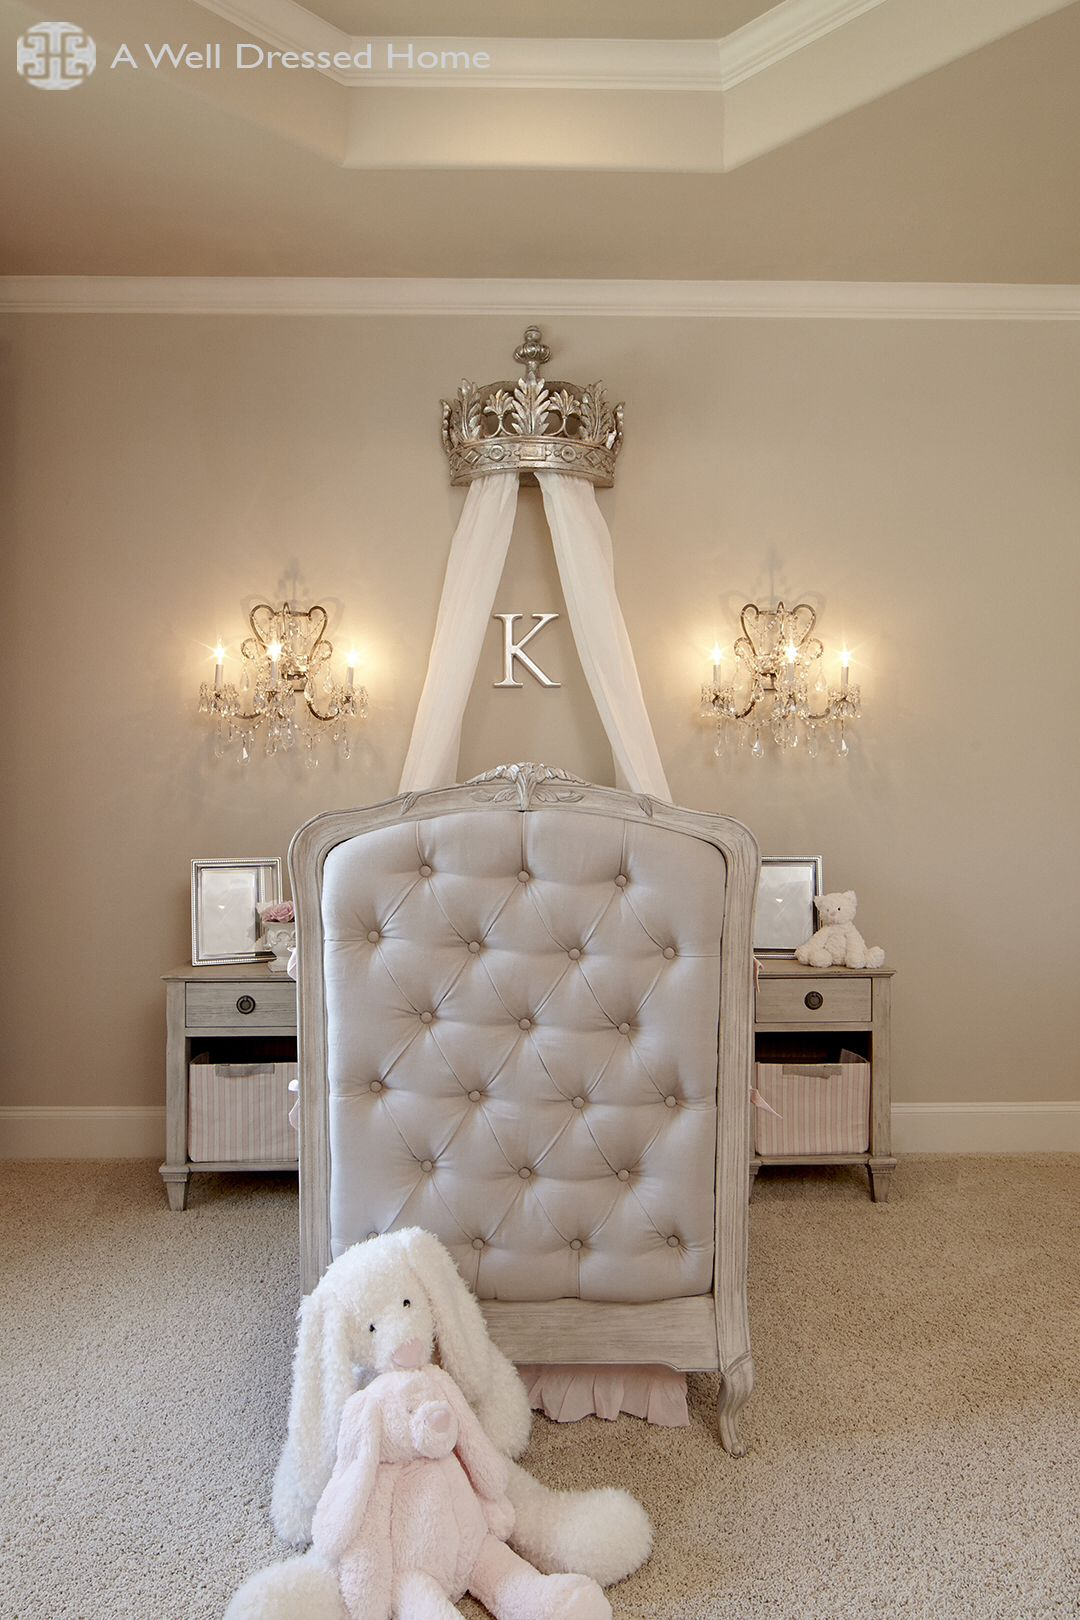 Vintage white crib for sale - I Have Never Seen A Tufted Crib This Is Beautiful